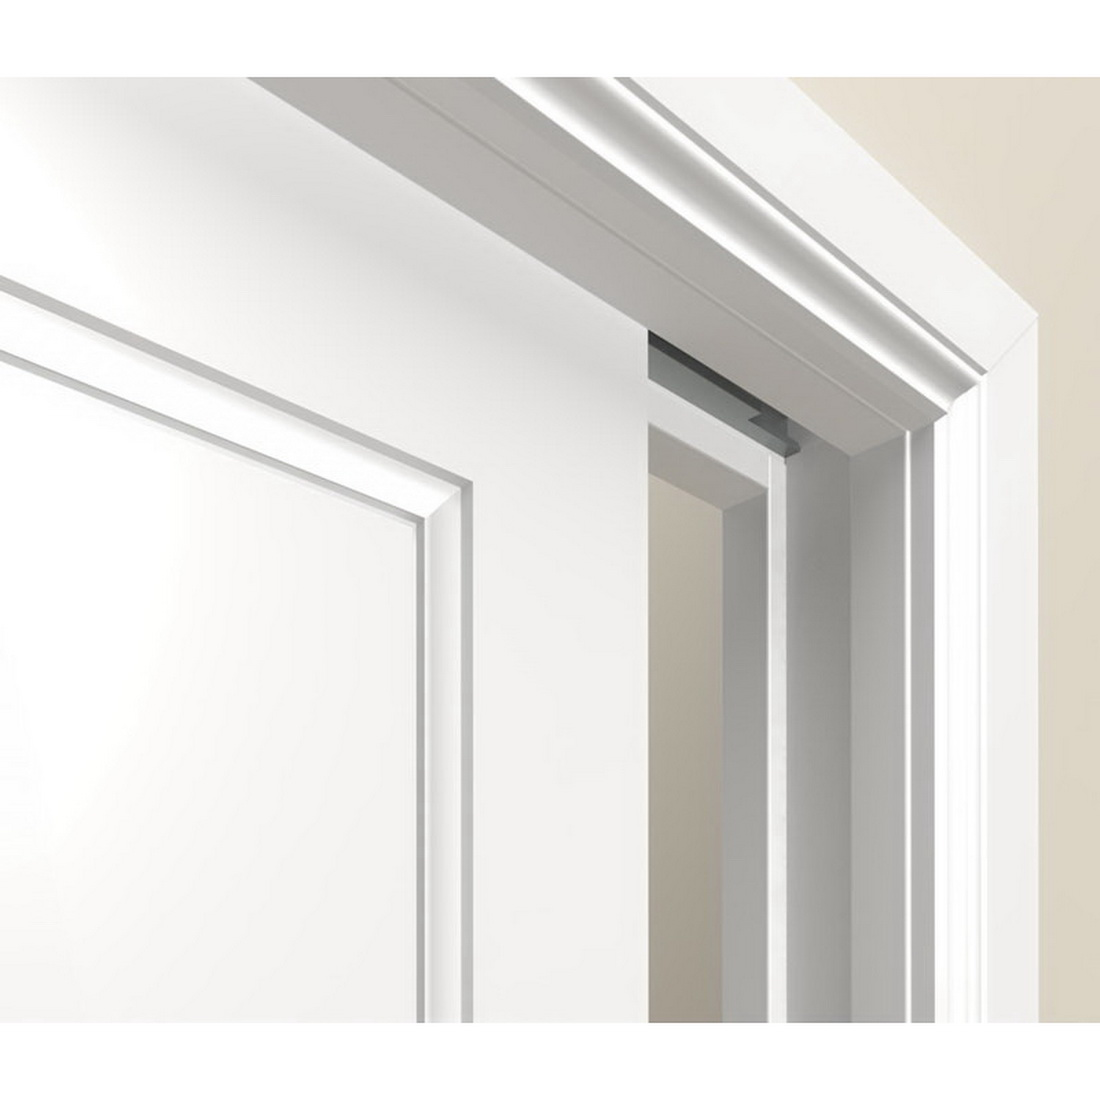 Sofstop Combo Architrave Jamb 1980 x 760 x 10mm Clear Pine